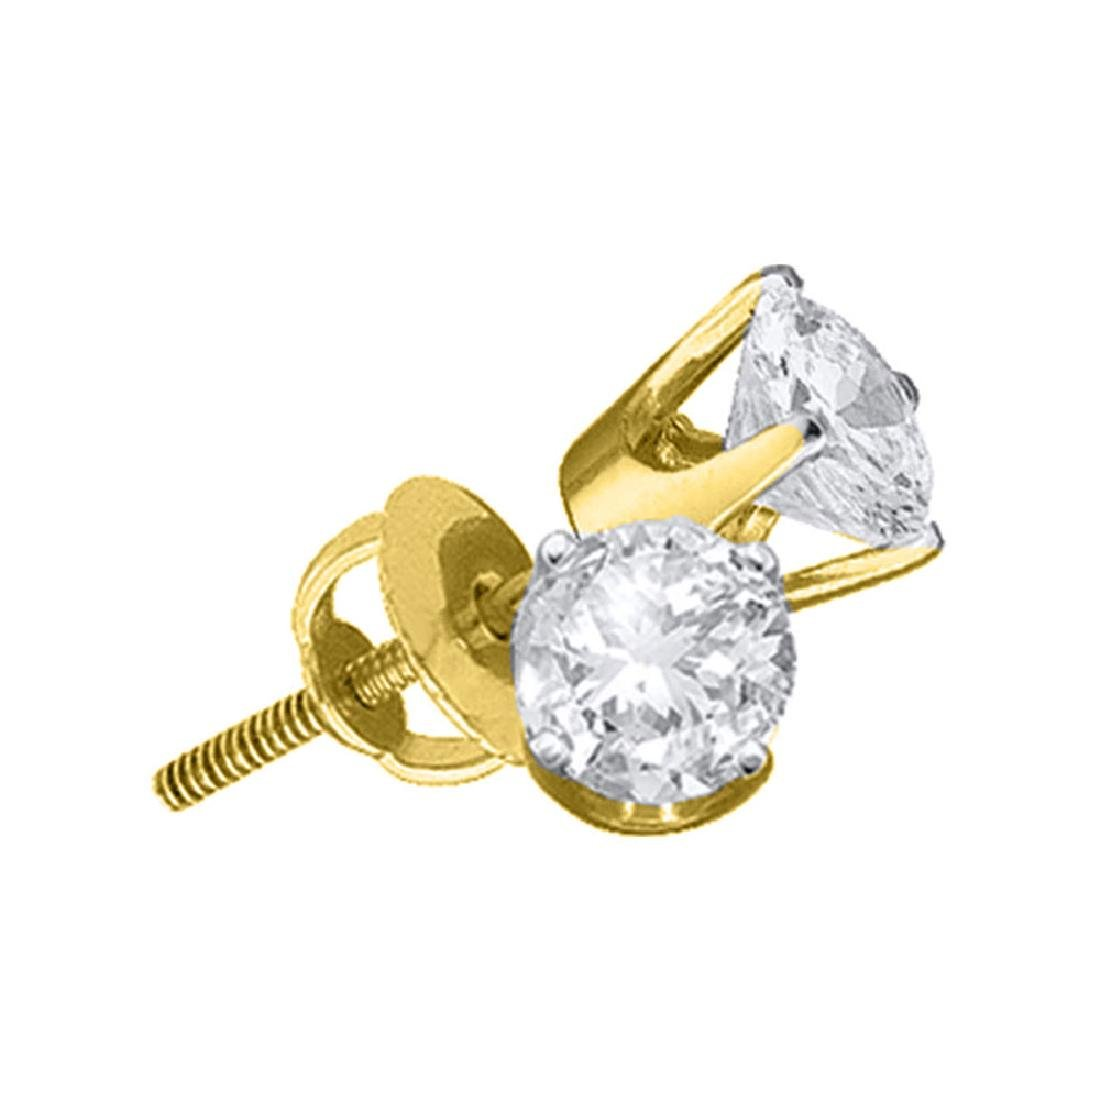 1.46 CTW Diamond Solitaire Stud Earrings 14KT Yellow